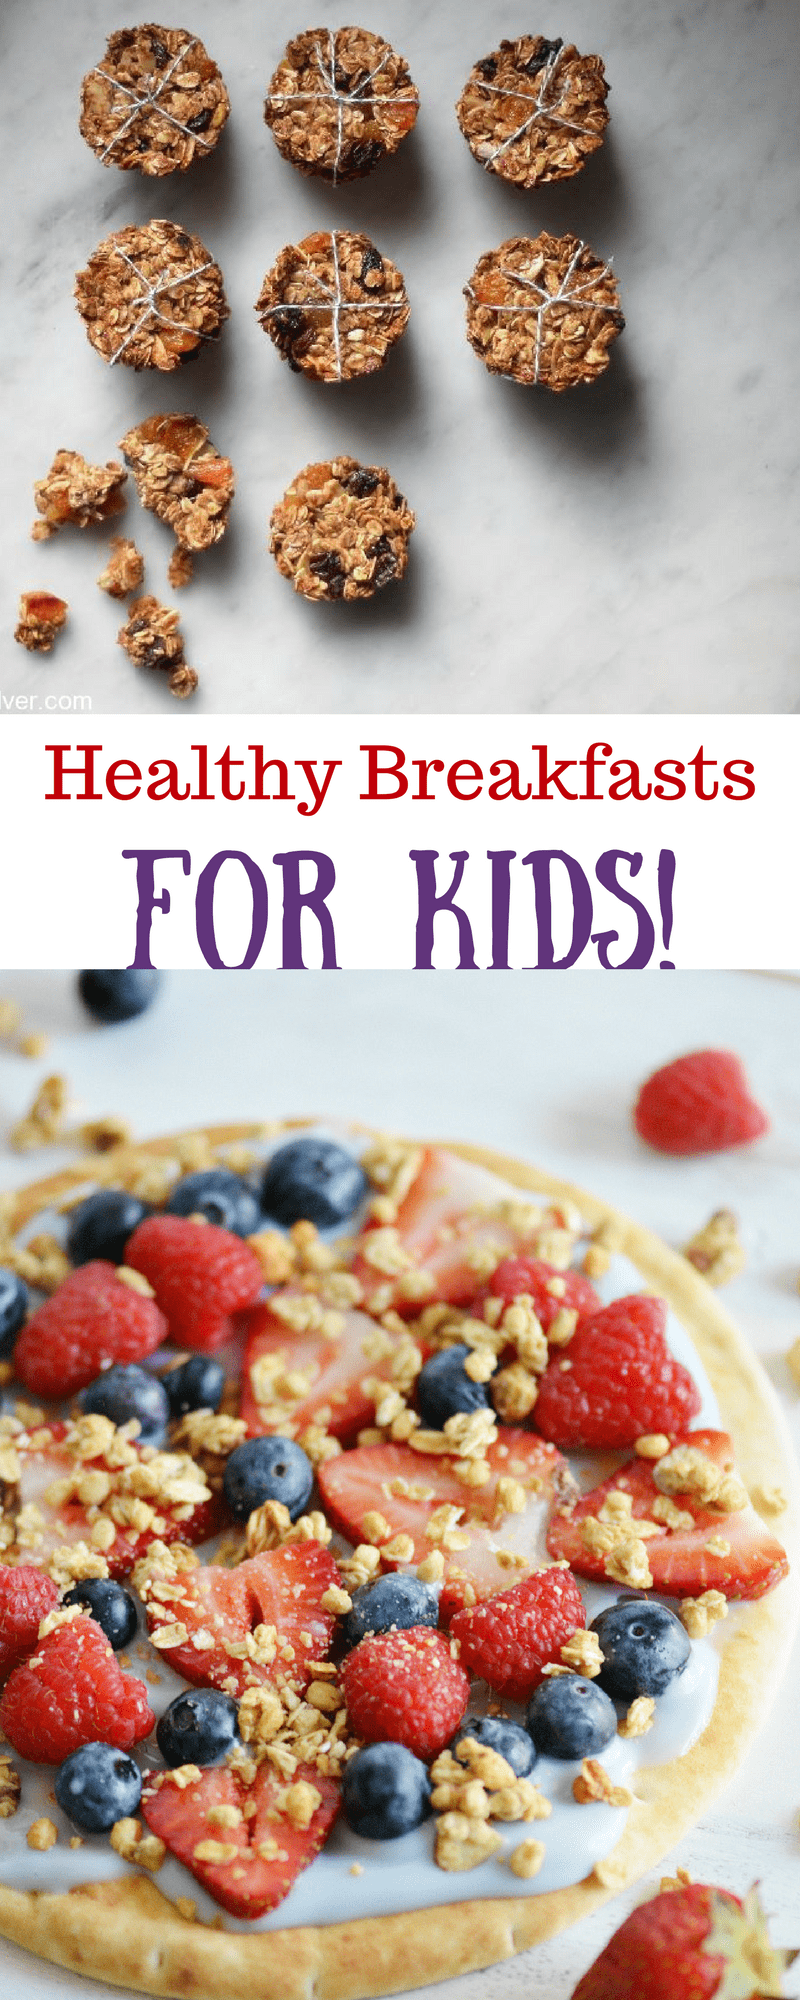 44 Healthy Breakfasts for Kids